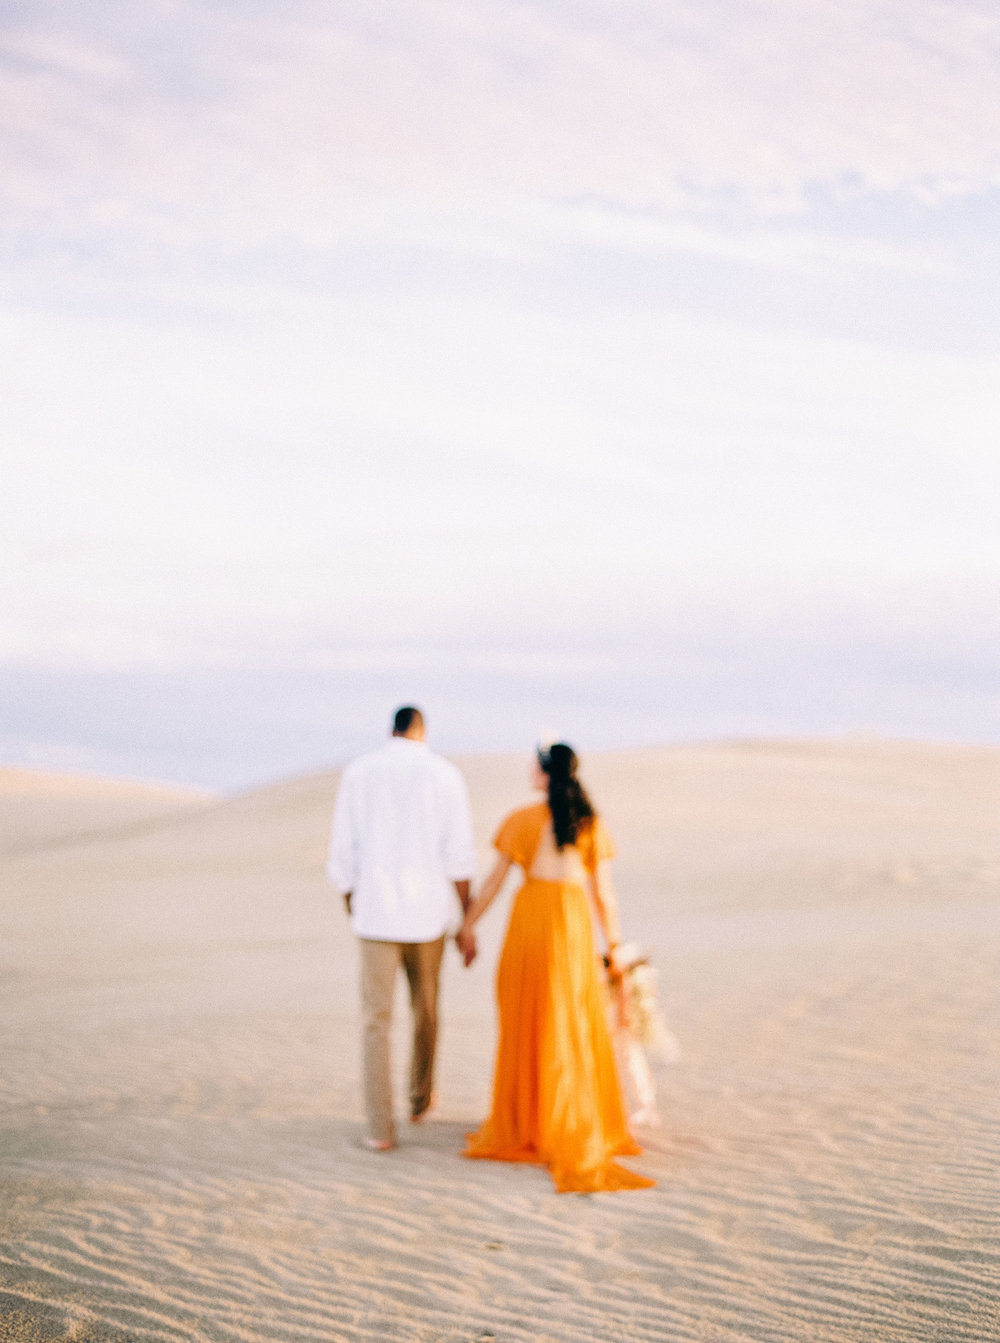 NikkiSanterre_FineArtFilmWeddingPhotographer_WeddingSparrowEditorial_AisleSociety_DesertEngagementSession-10.jpg